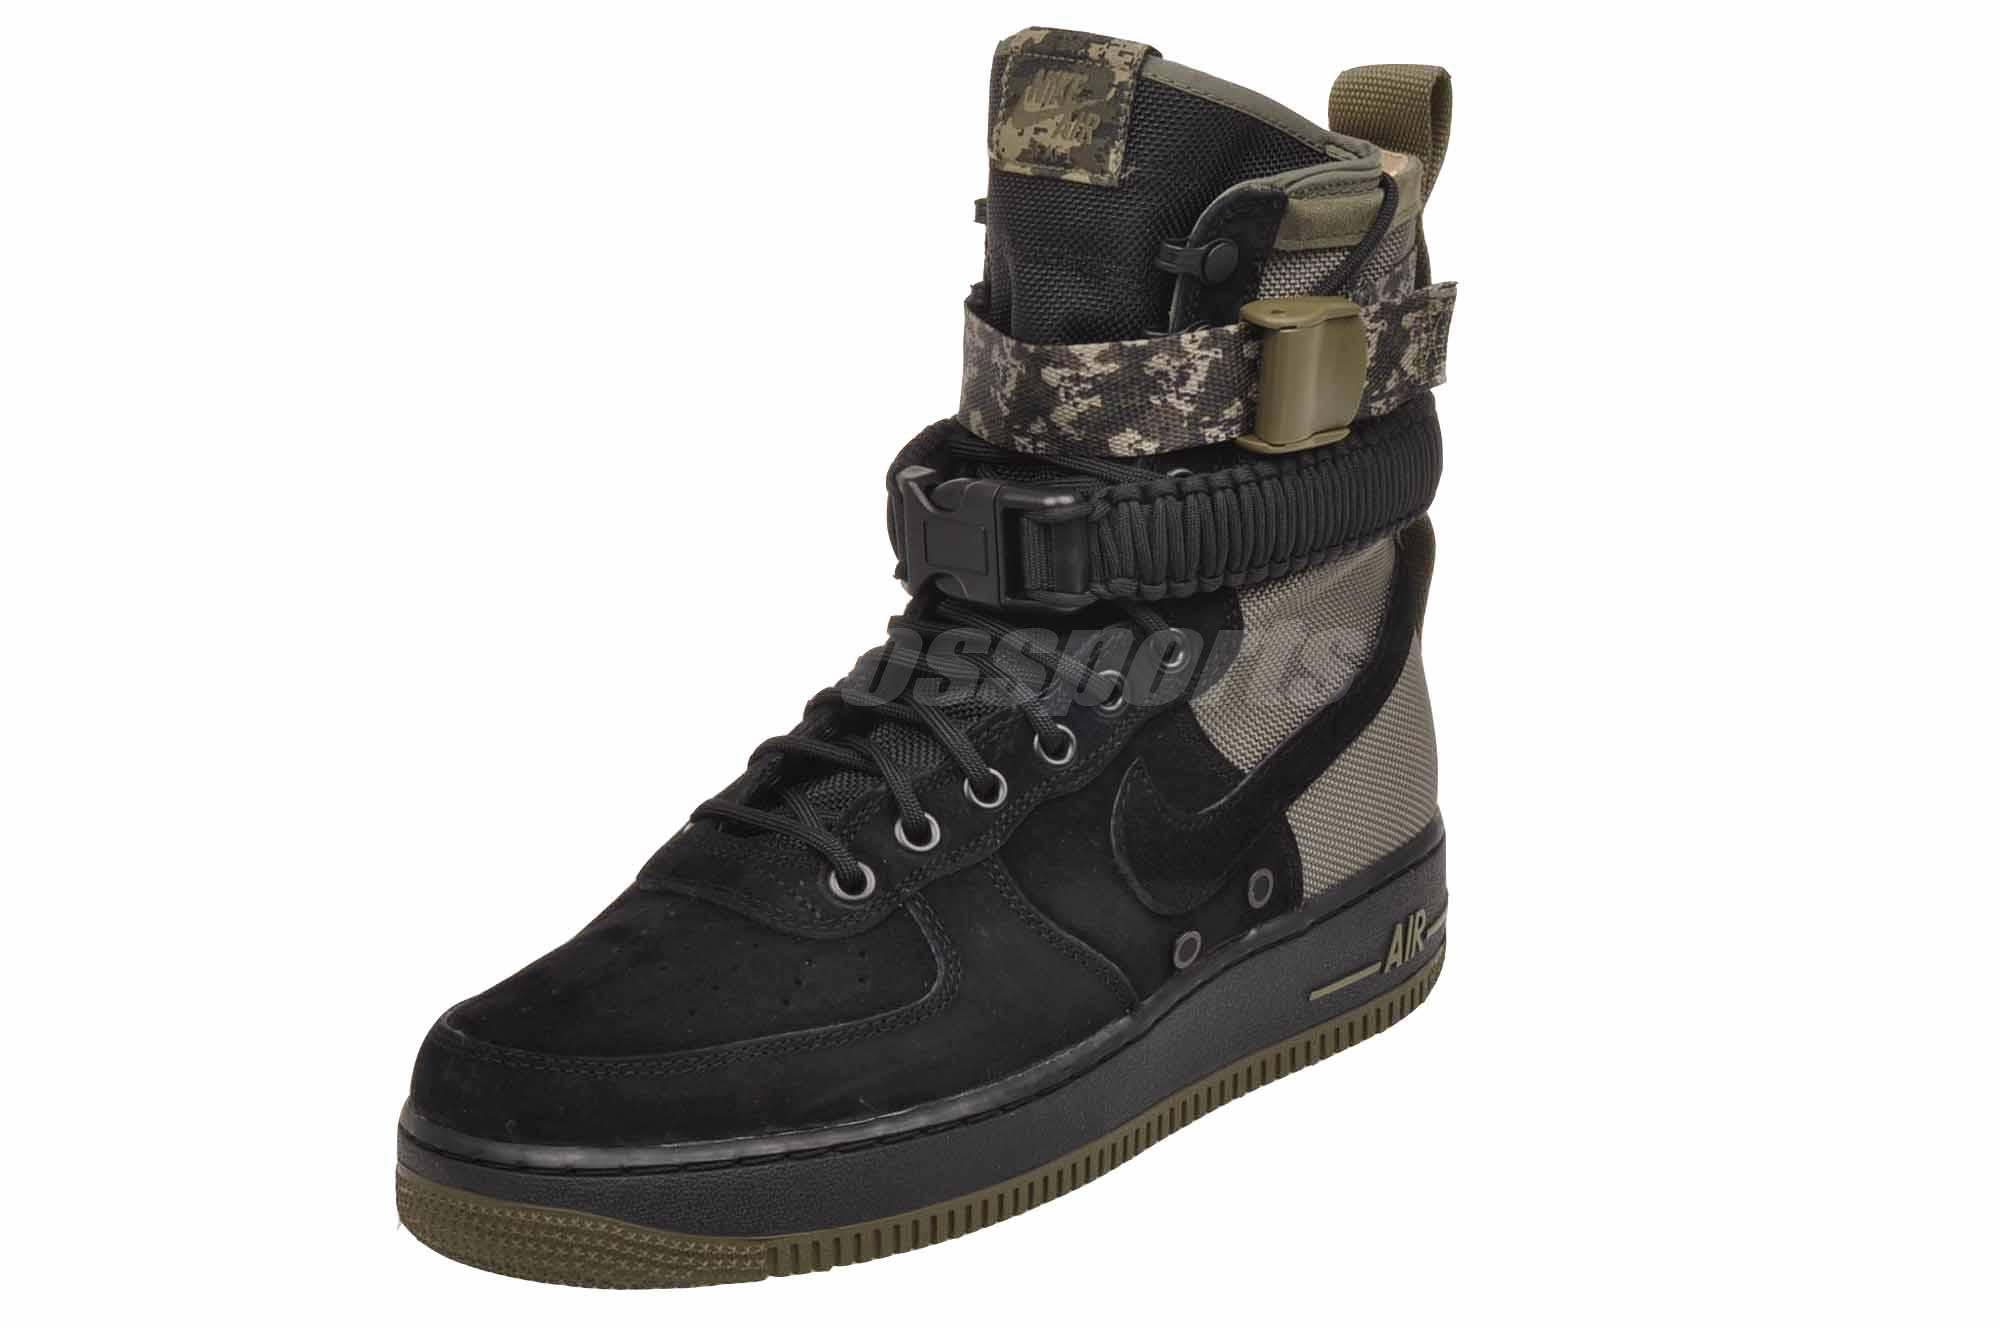 9ef15a251d Nike SF AF1 Casual Air Force 1 Special Field Mens Boots Shoes Camo ...